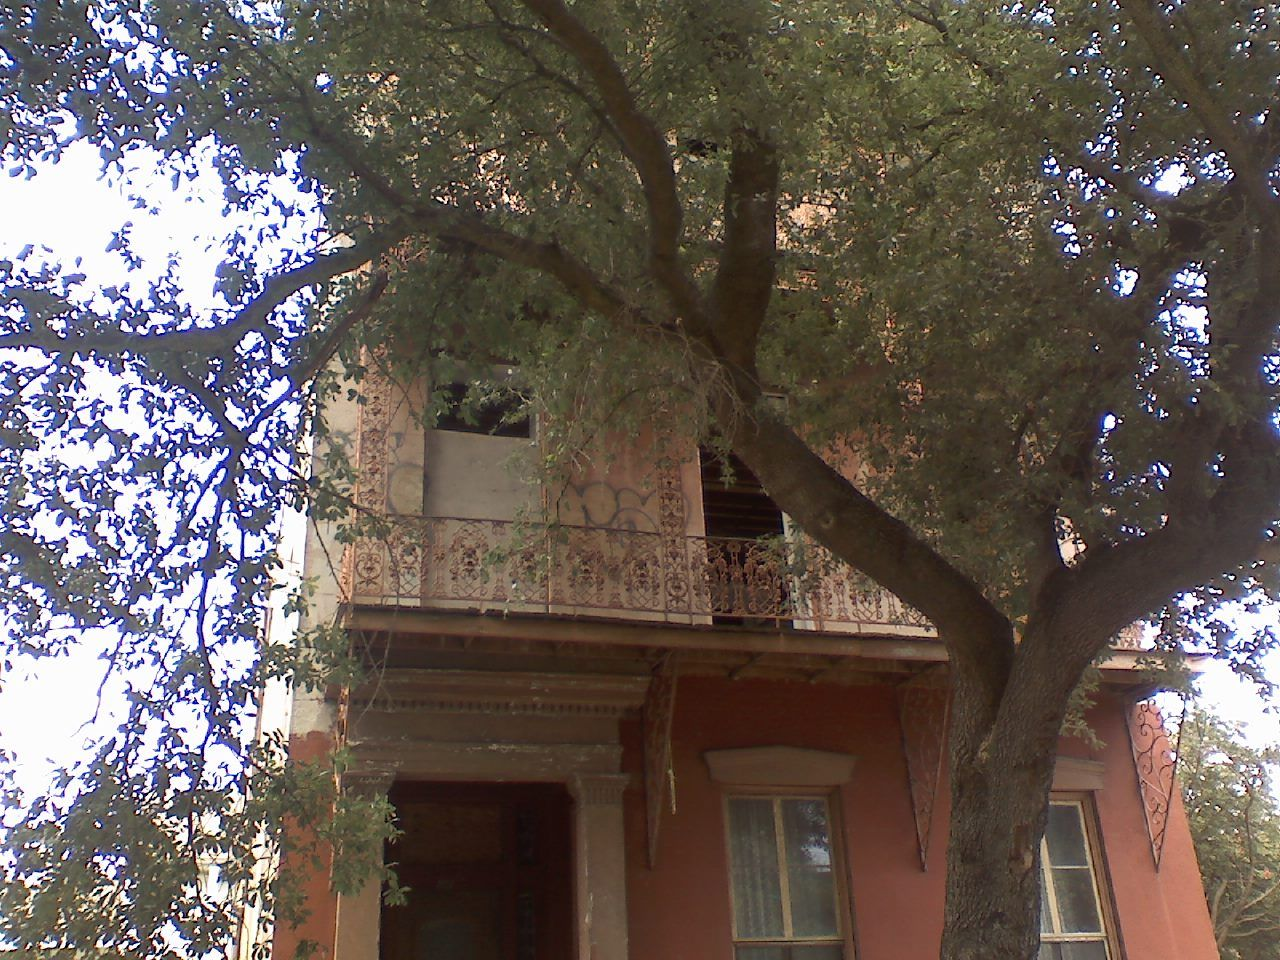 the architecture in NOLA is beautiful... spanish inspired, french tweaked into southern charm.